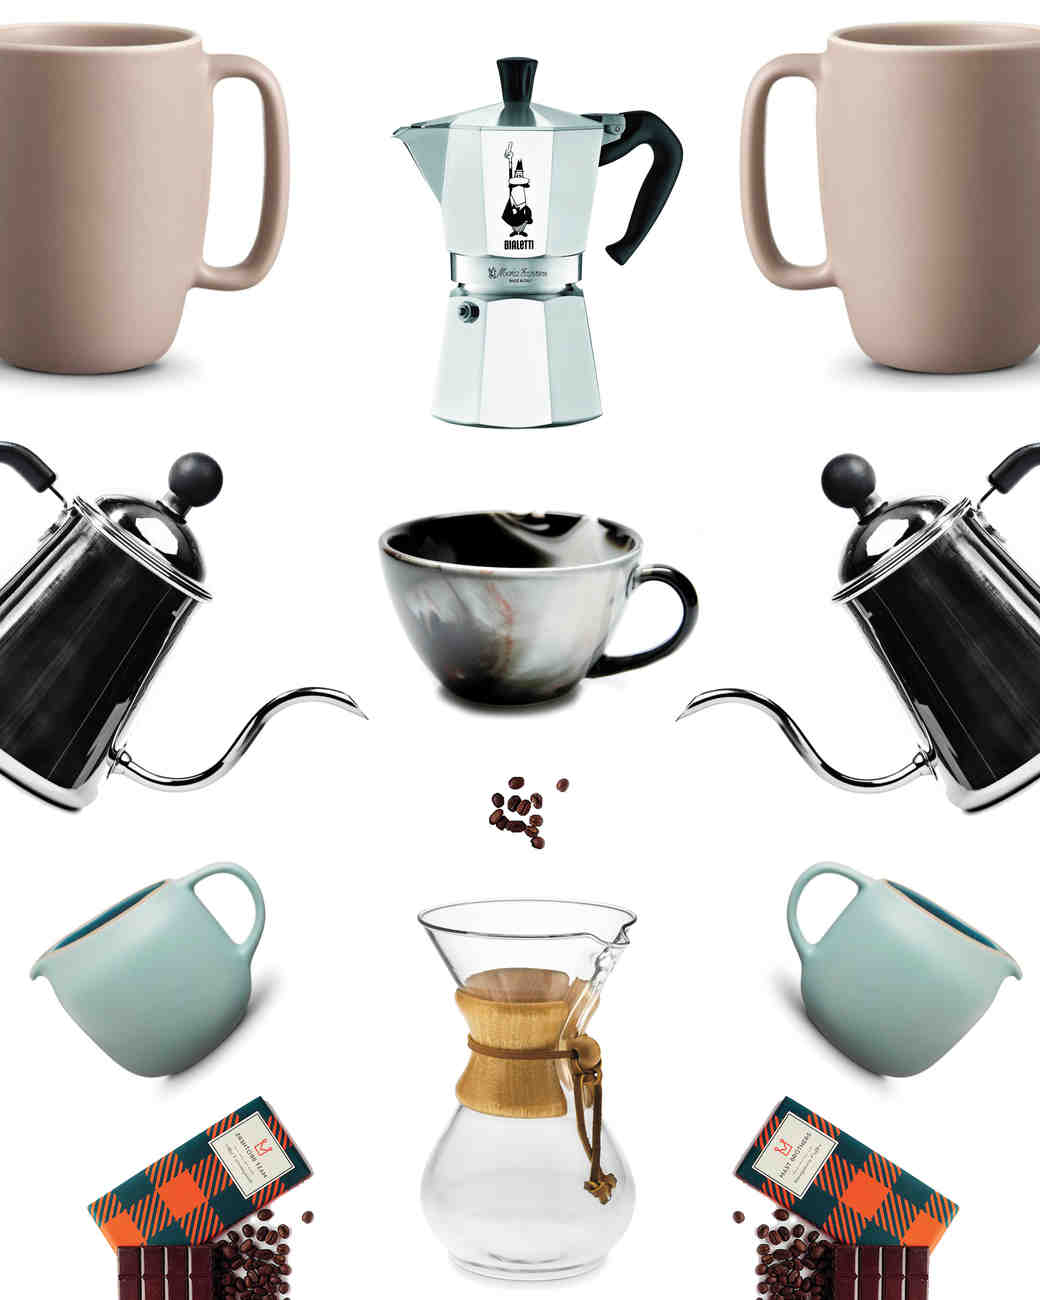 Ideas For Wedding Gifts: 22 Wedding Gift Ideas For Coffee Lovers